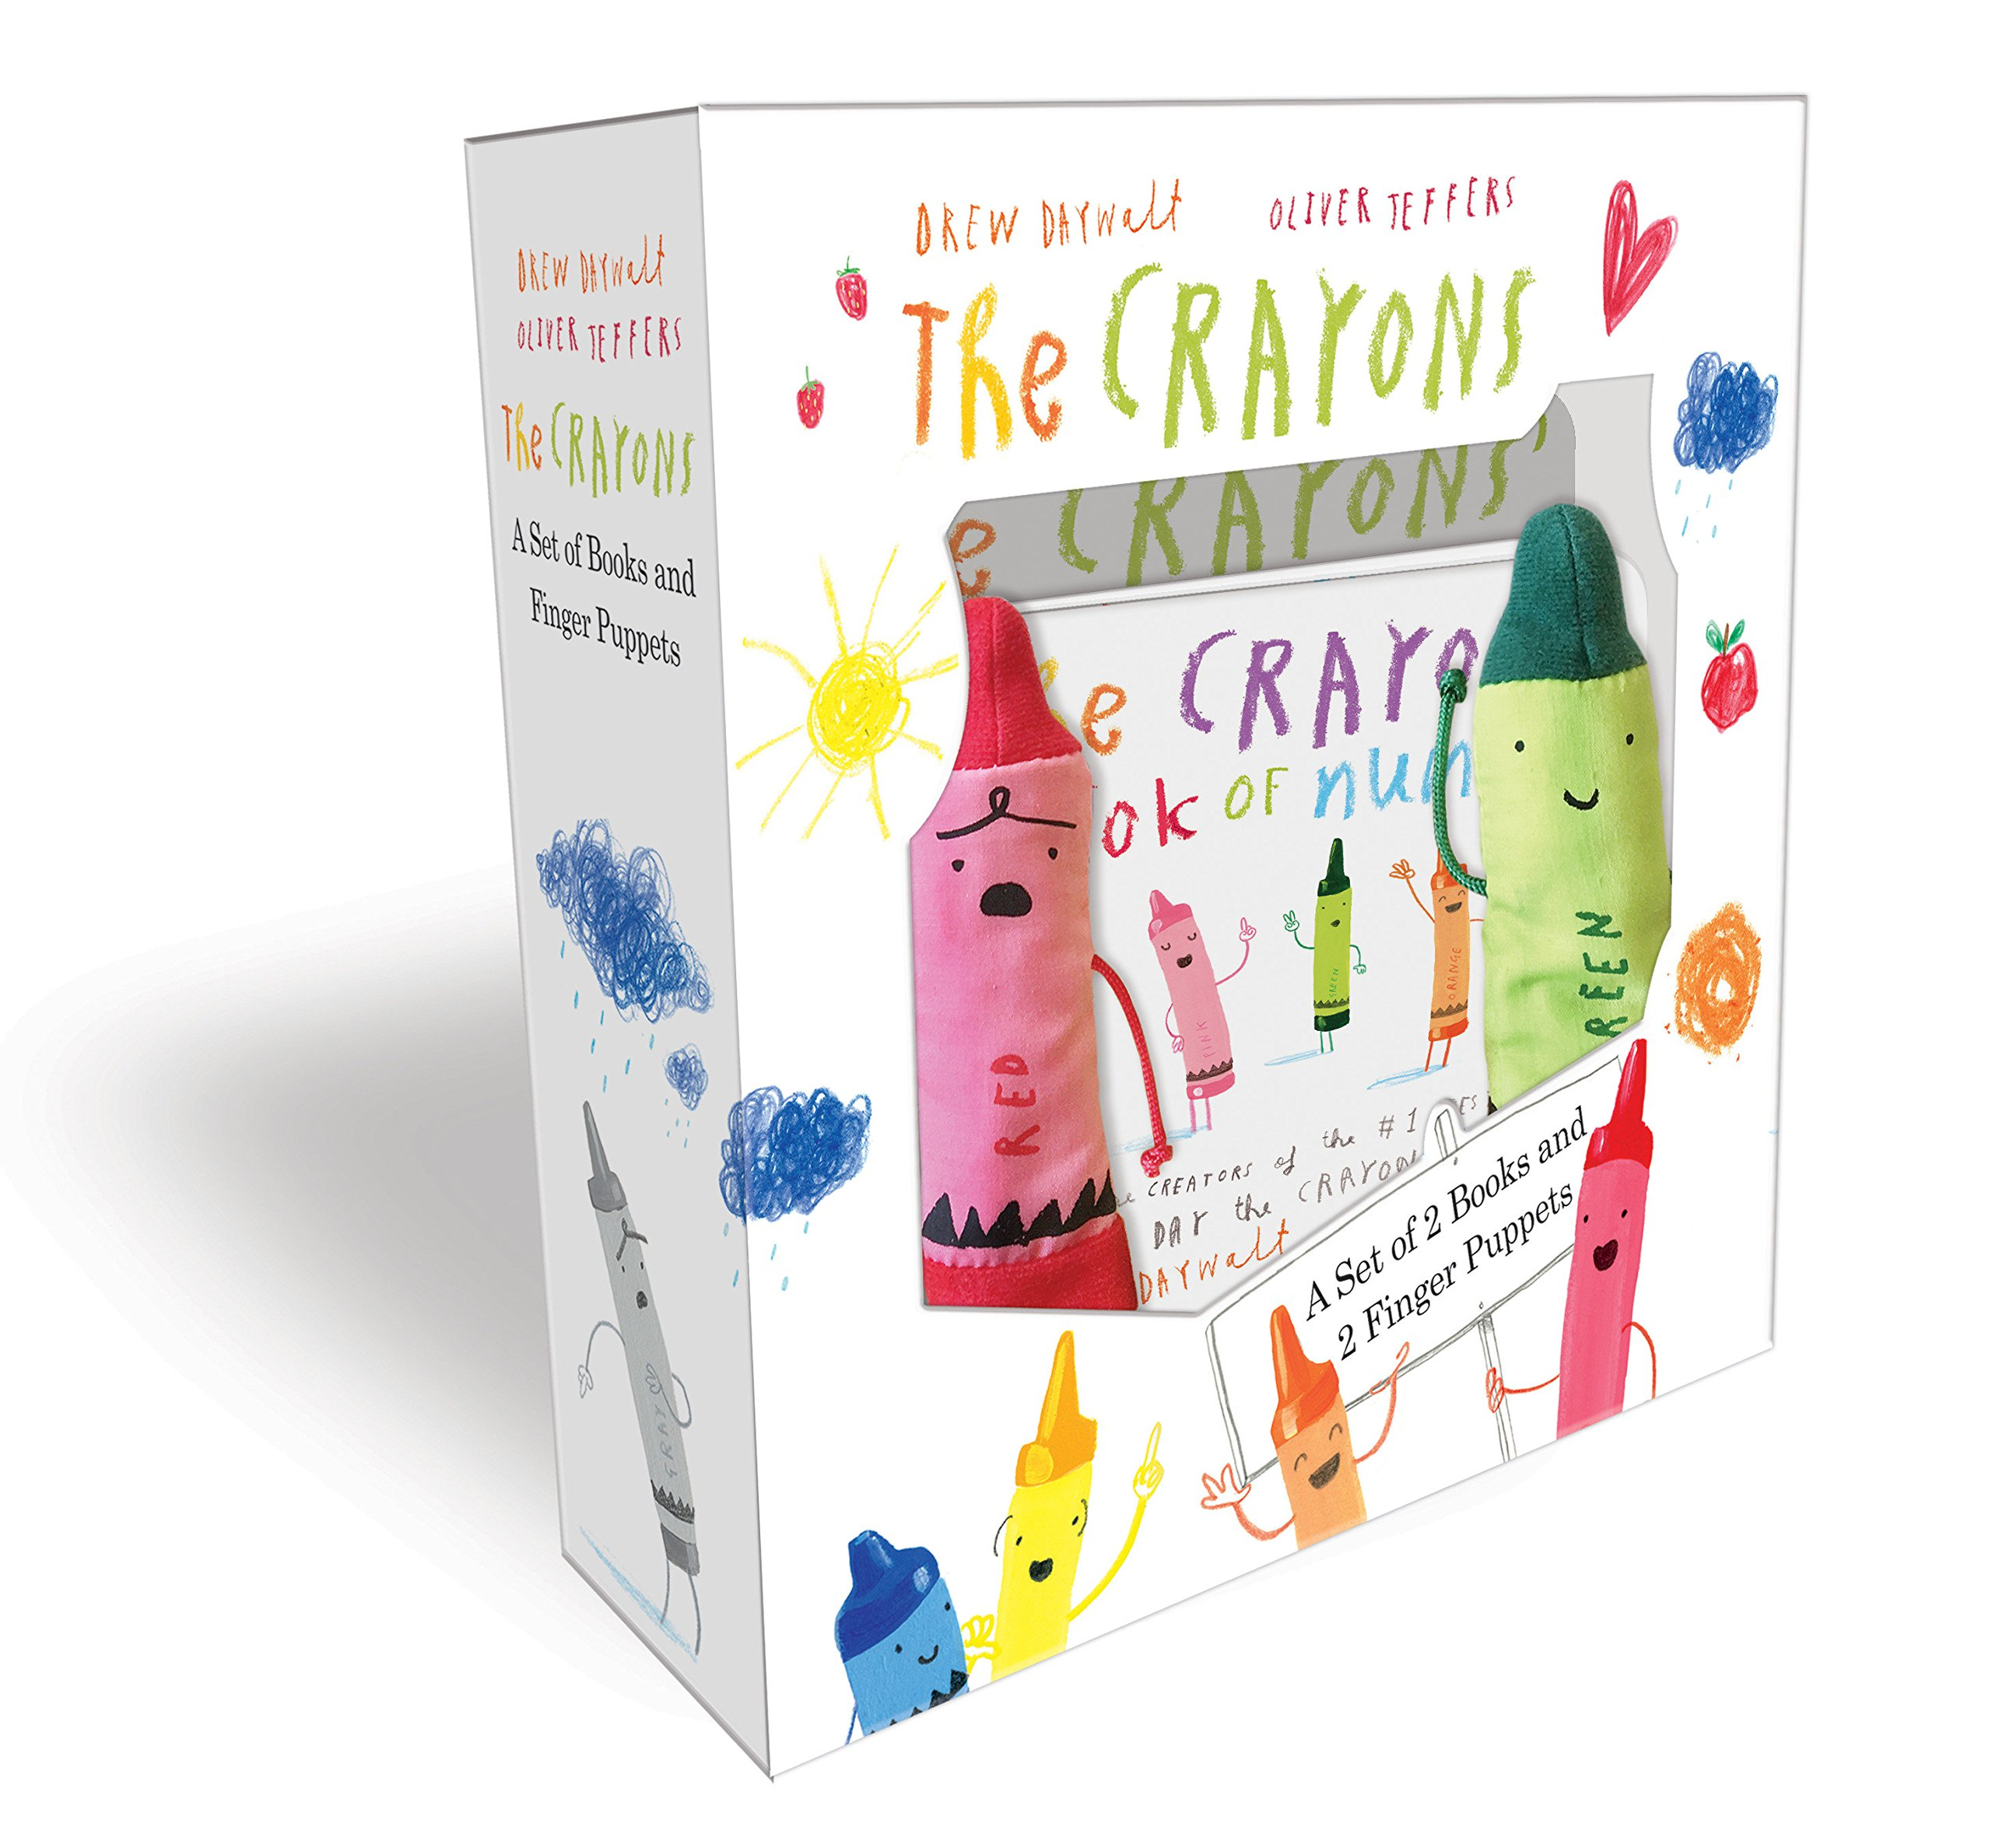 Amazon Com The Crayons A Set Of Books And Finger Puppets